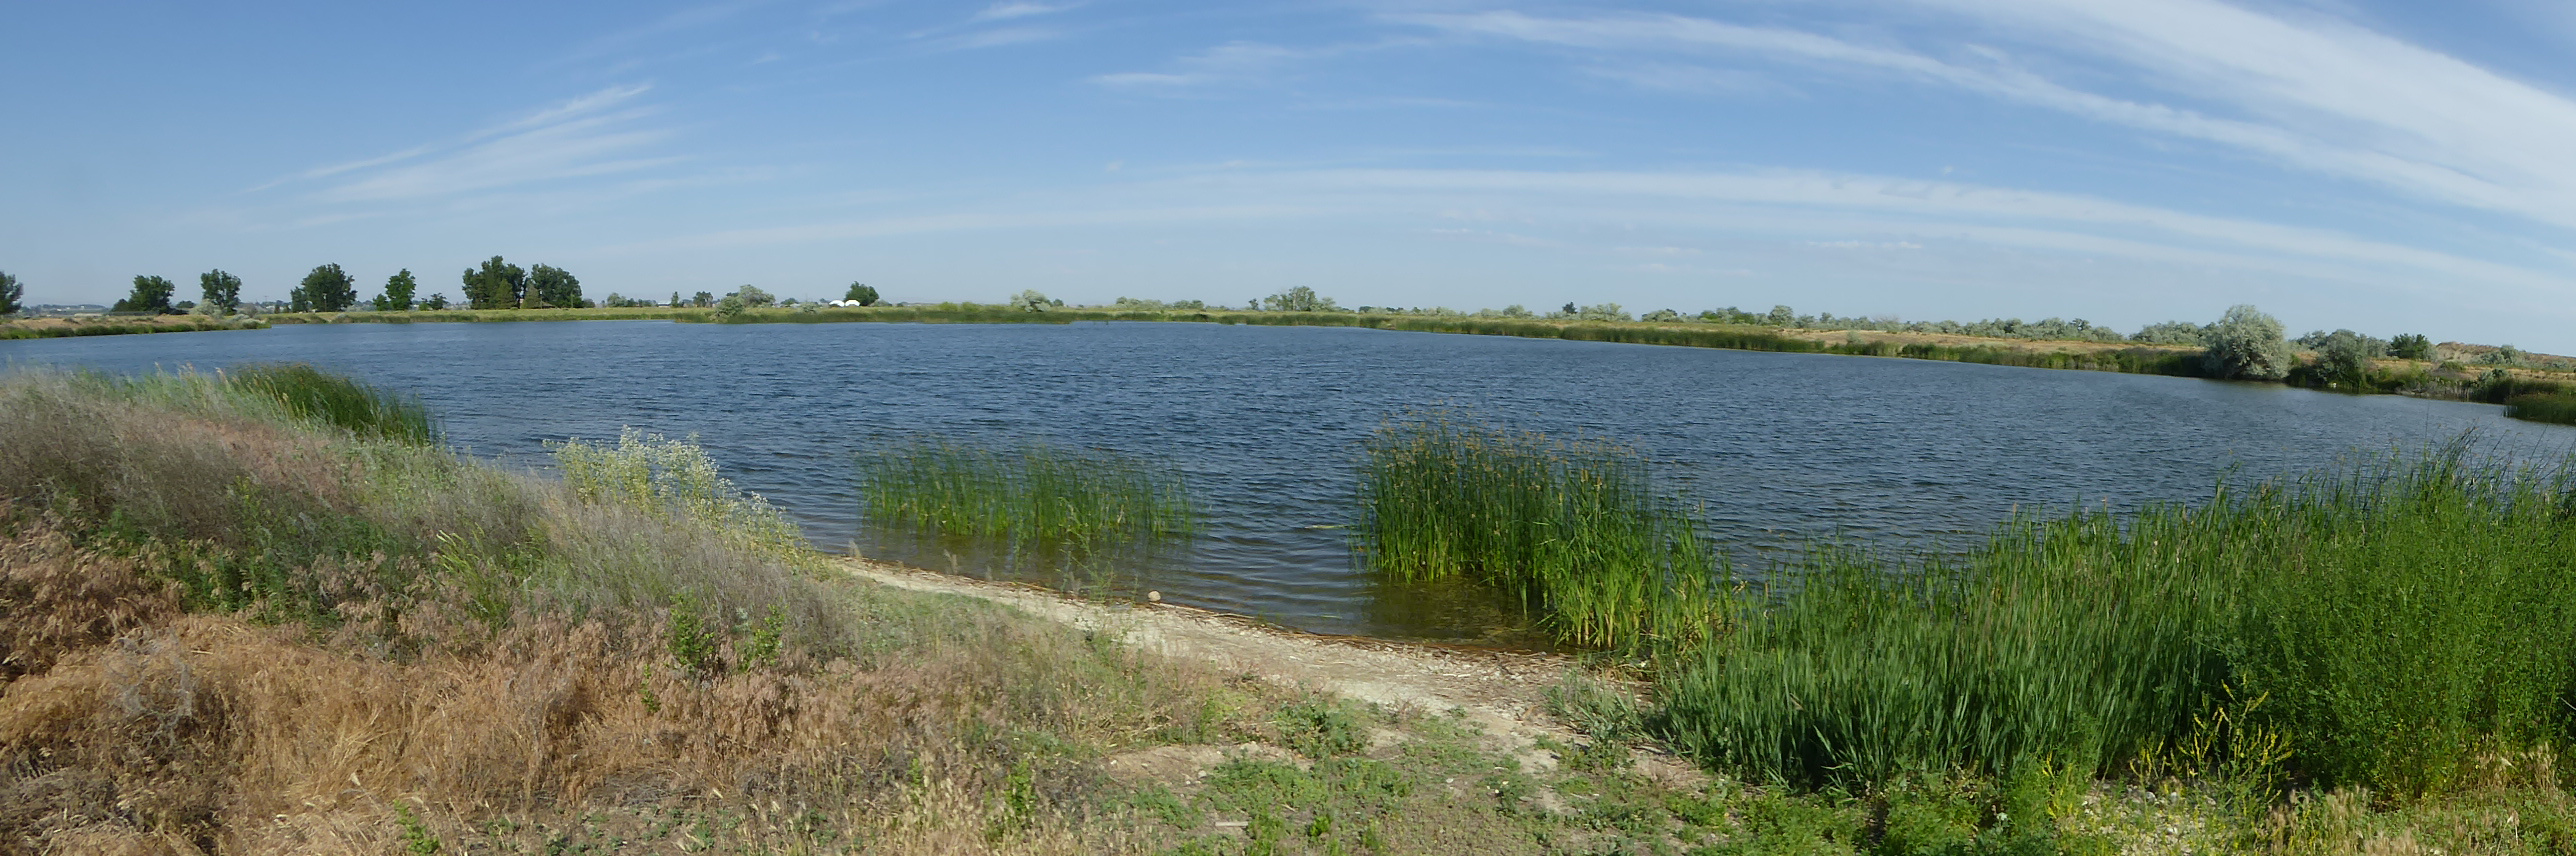 Red top pond gets big improvements for anglers idaho for Best fishing in idaho